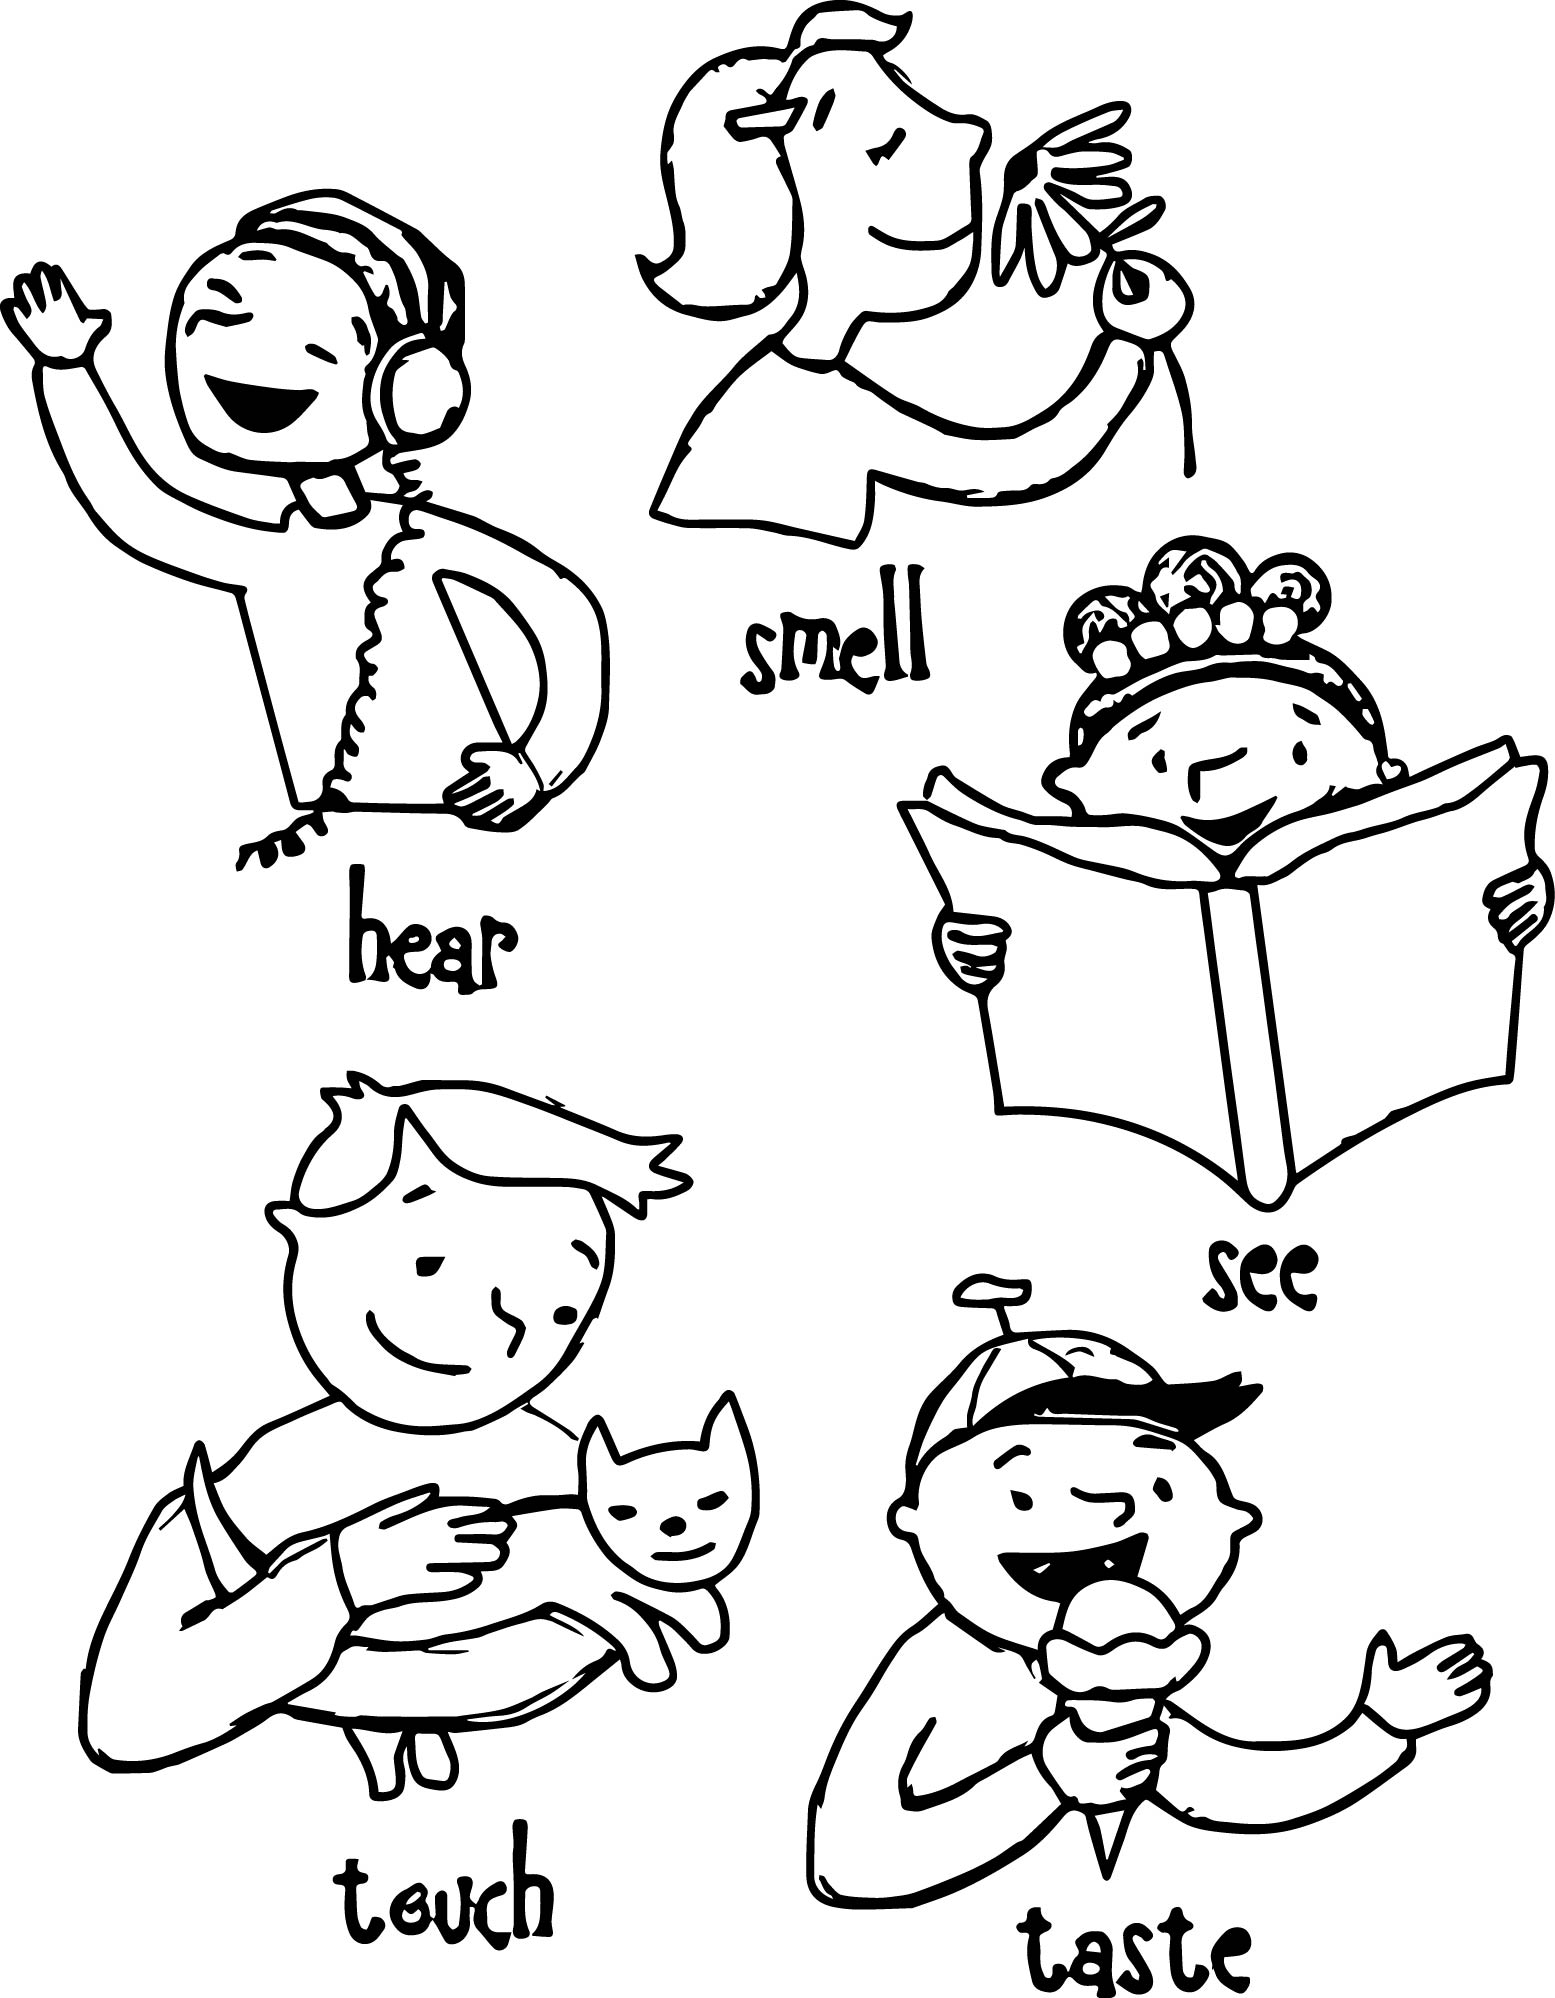 5 Senses Clipart Black And White 5 Senses Black And White Transparent Free For Download On